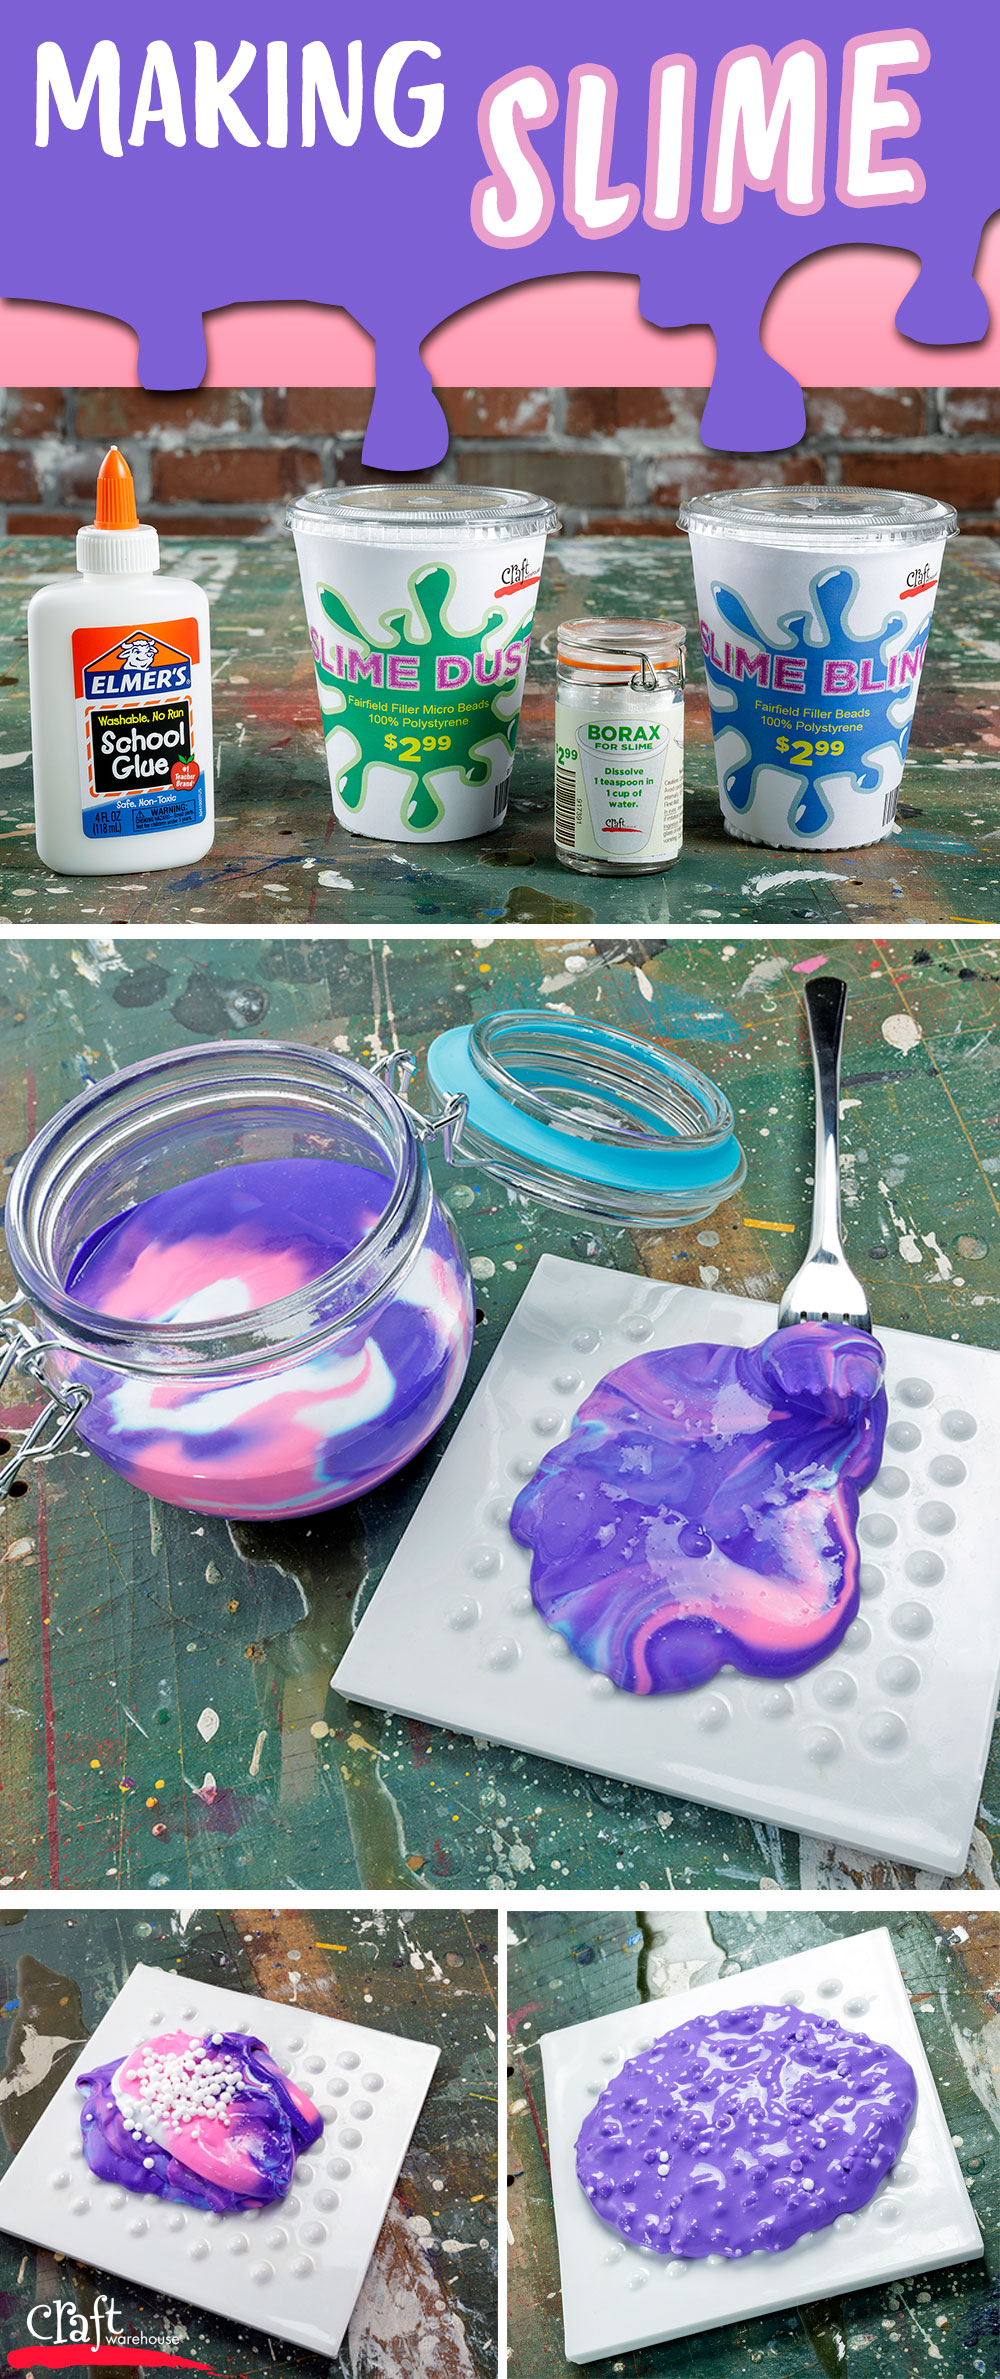 Ll Craft Warehouse Stores Have Slime Displays And Many Have Created Some  Fun And Crazy Recipes For Slime Stop By Your Local Craft Warehouse To See  The